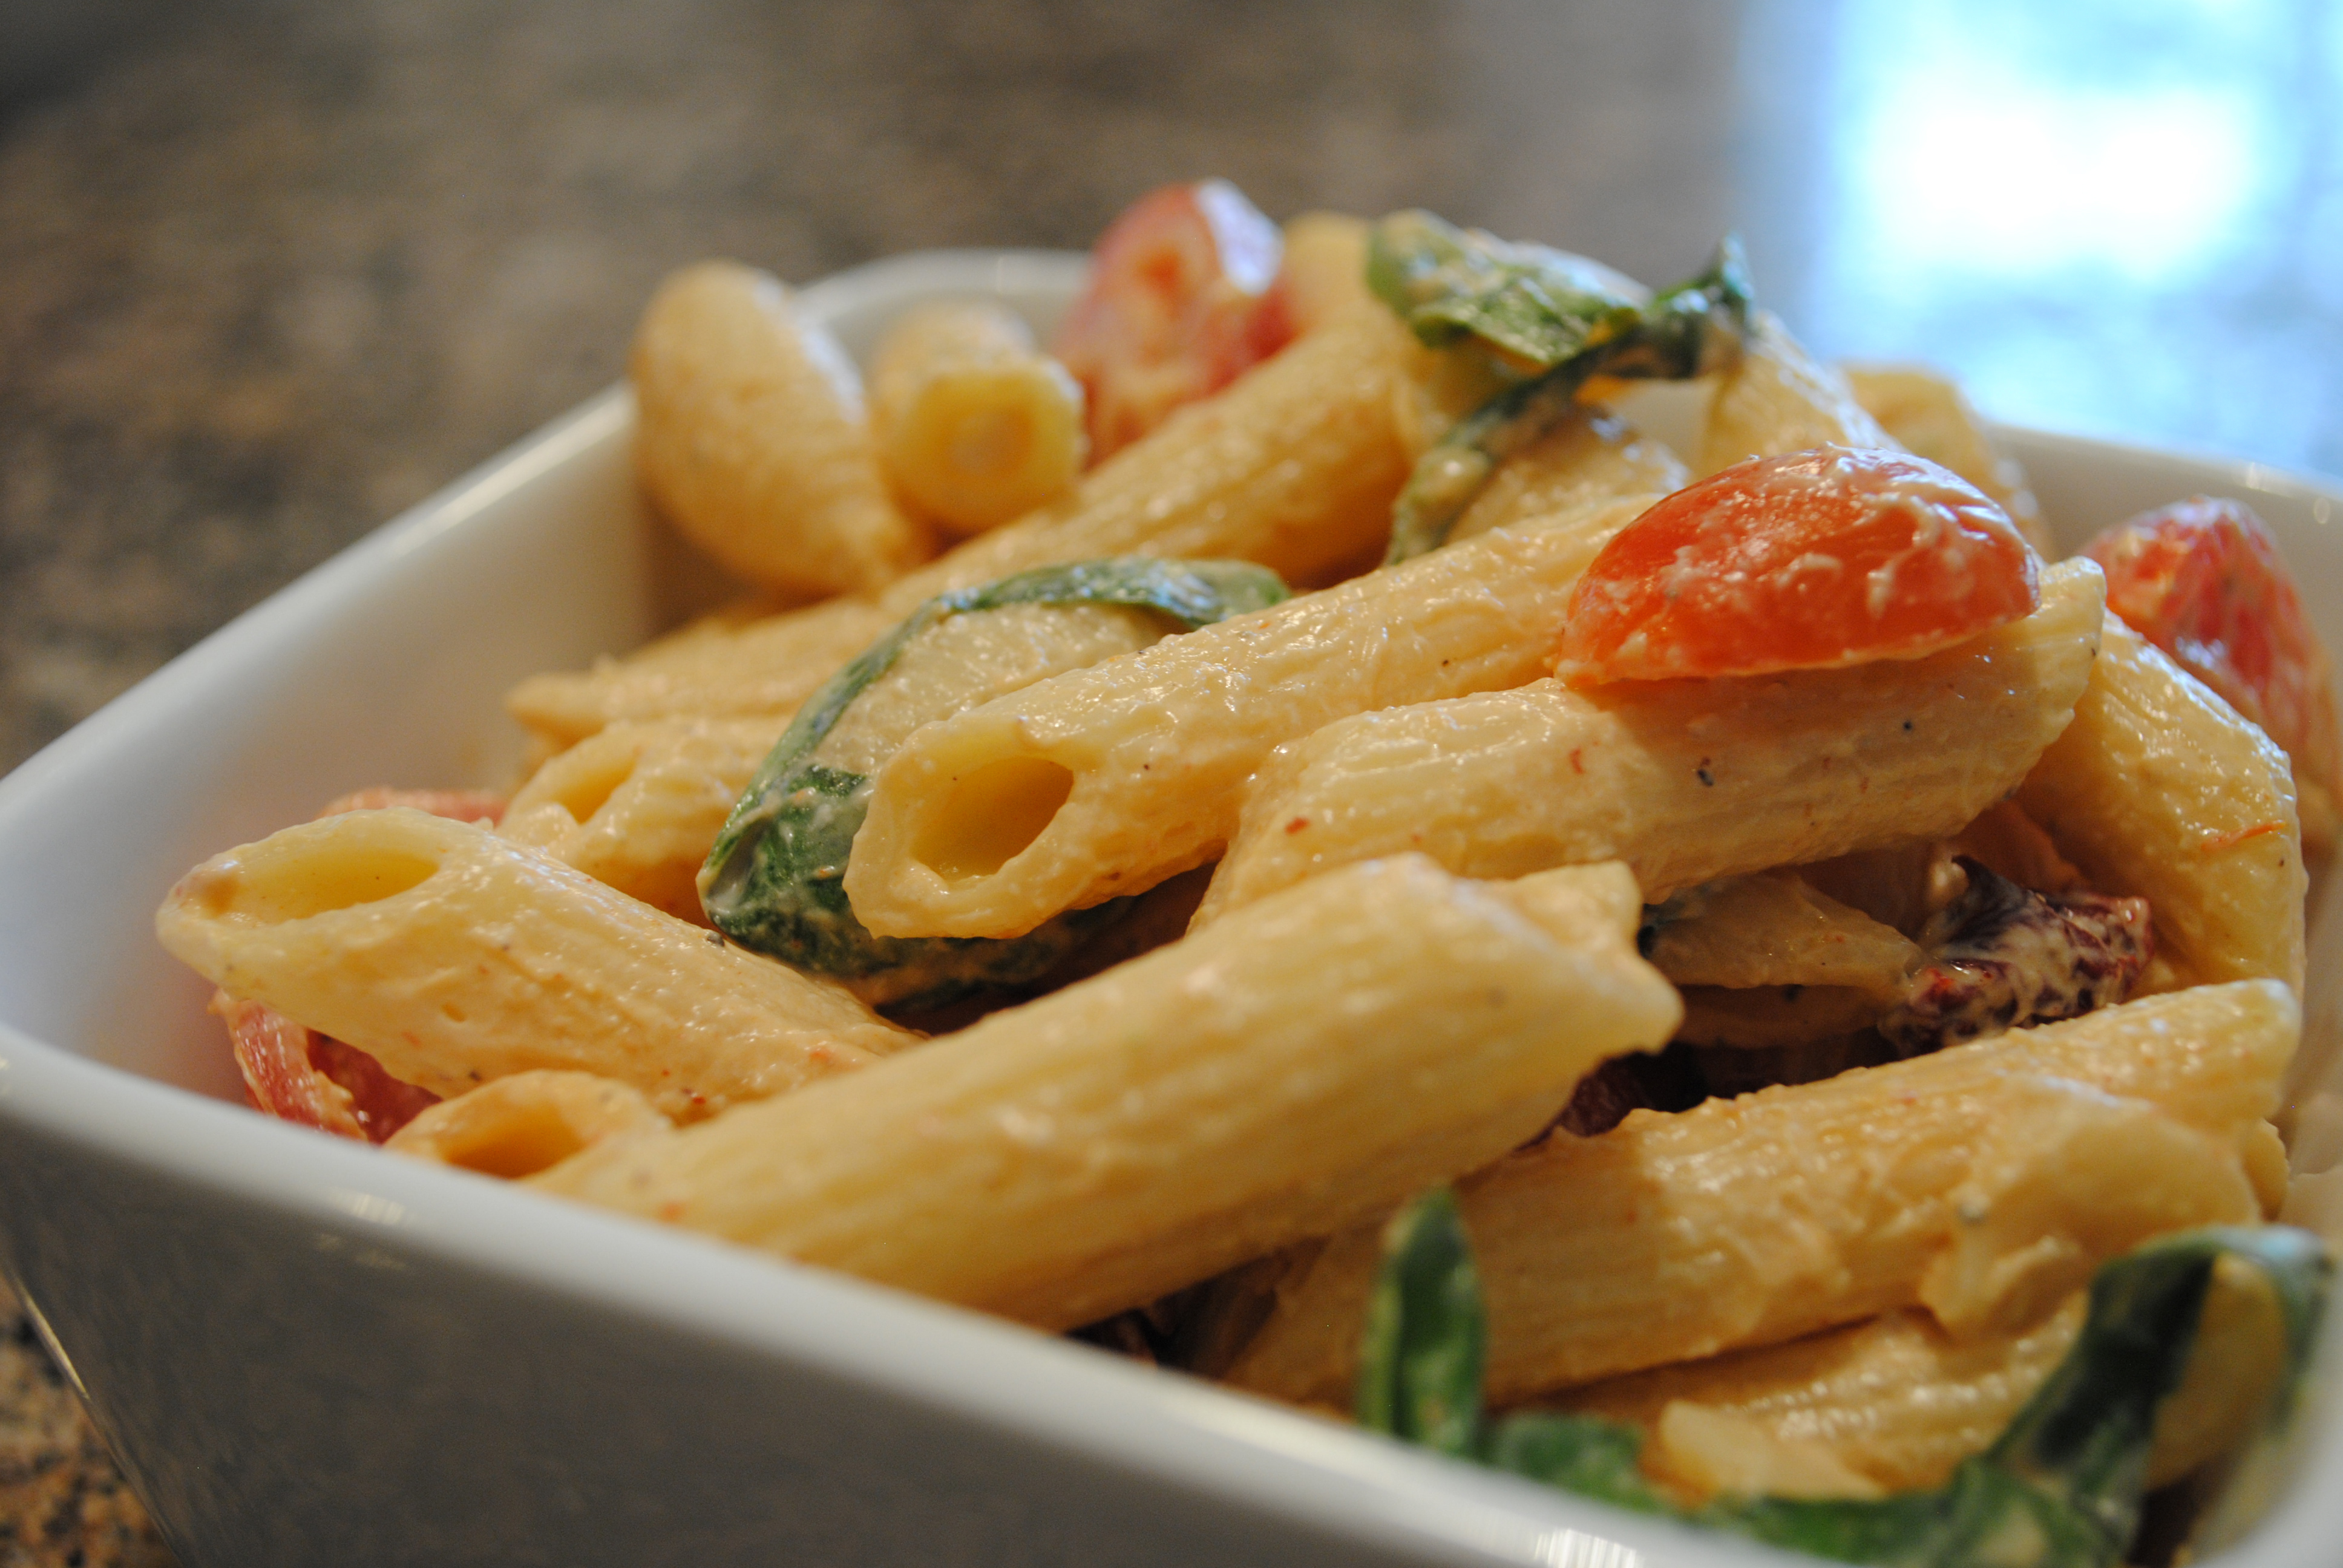 Vegan Spicy Pasta Salad